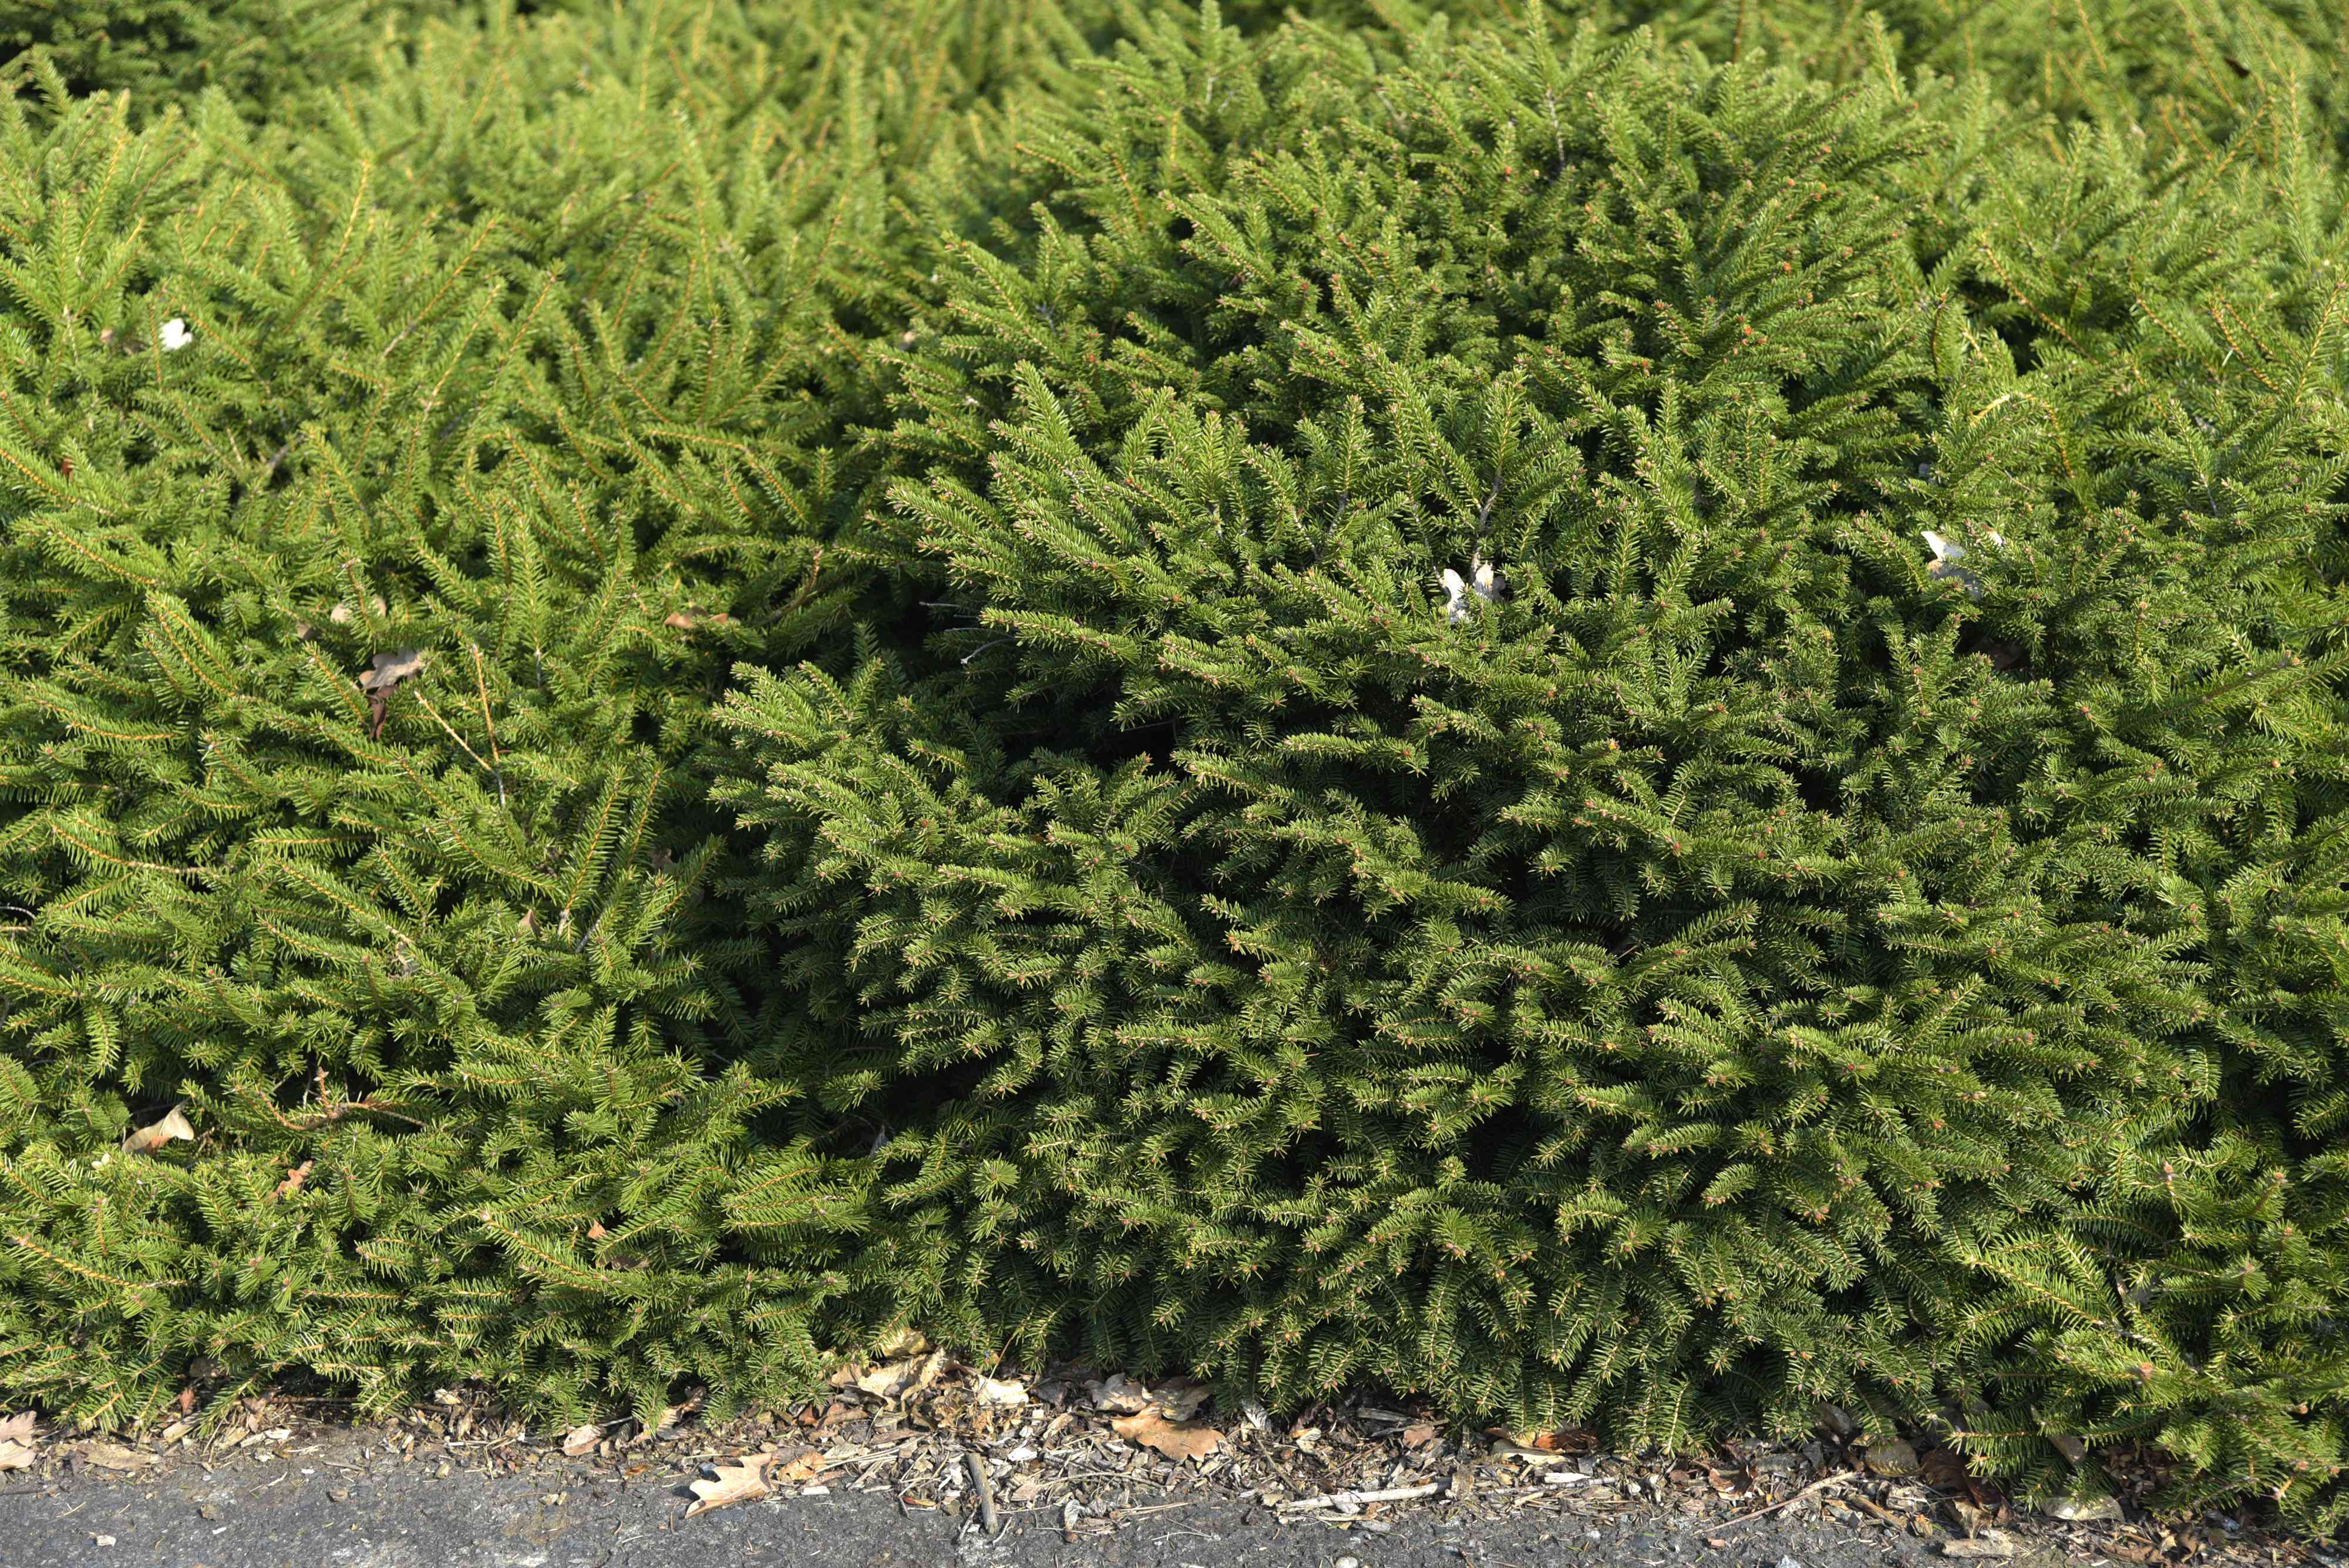 Bird's nest spruce shrub next to gravel pathway with horizontal branches and small white flowers